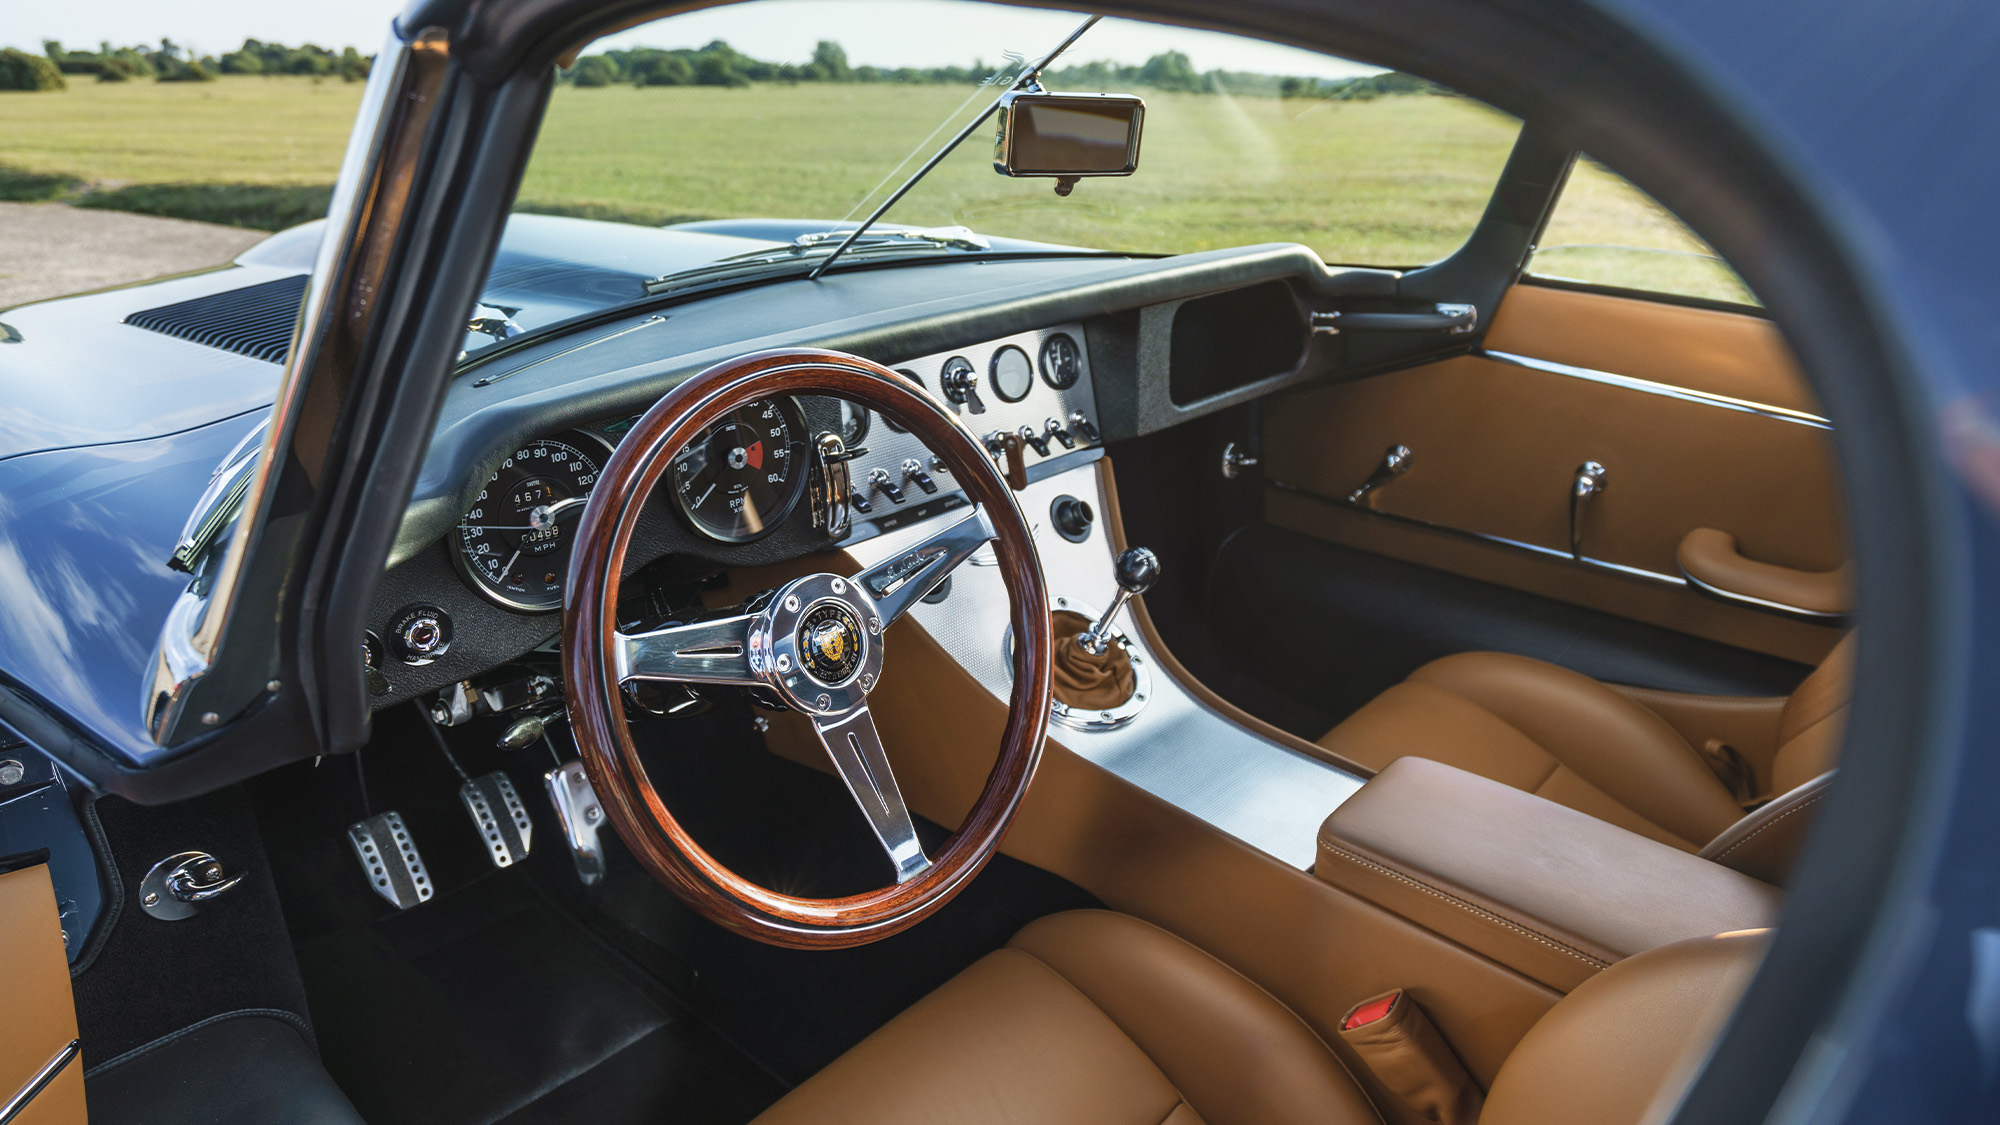 Interior of the 2020 Eagle E-type Lightweight GT